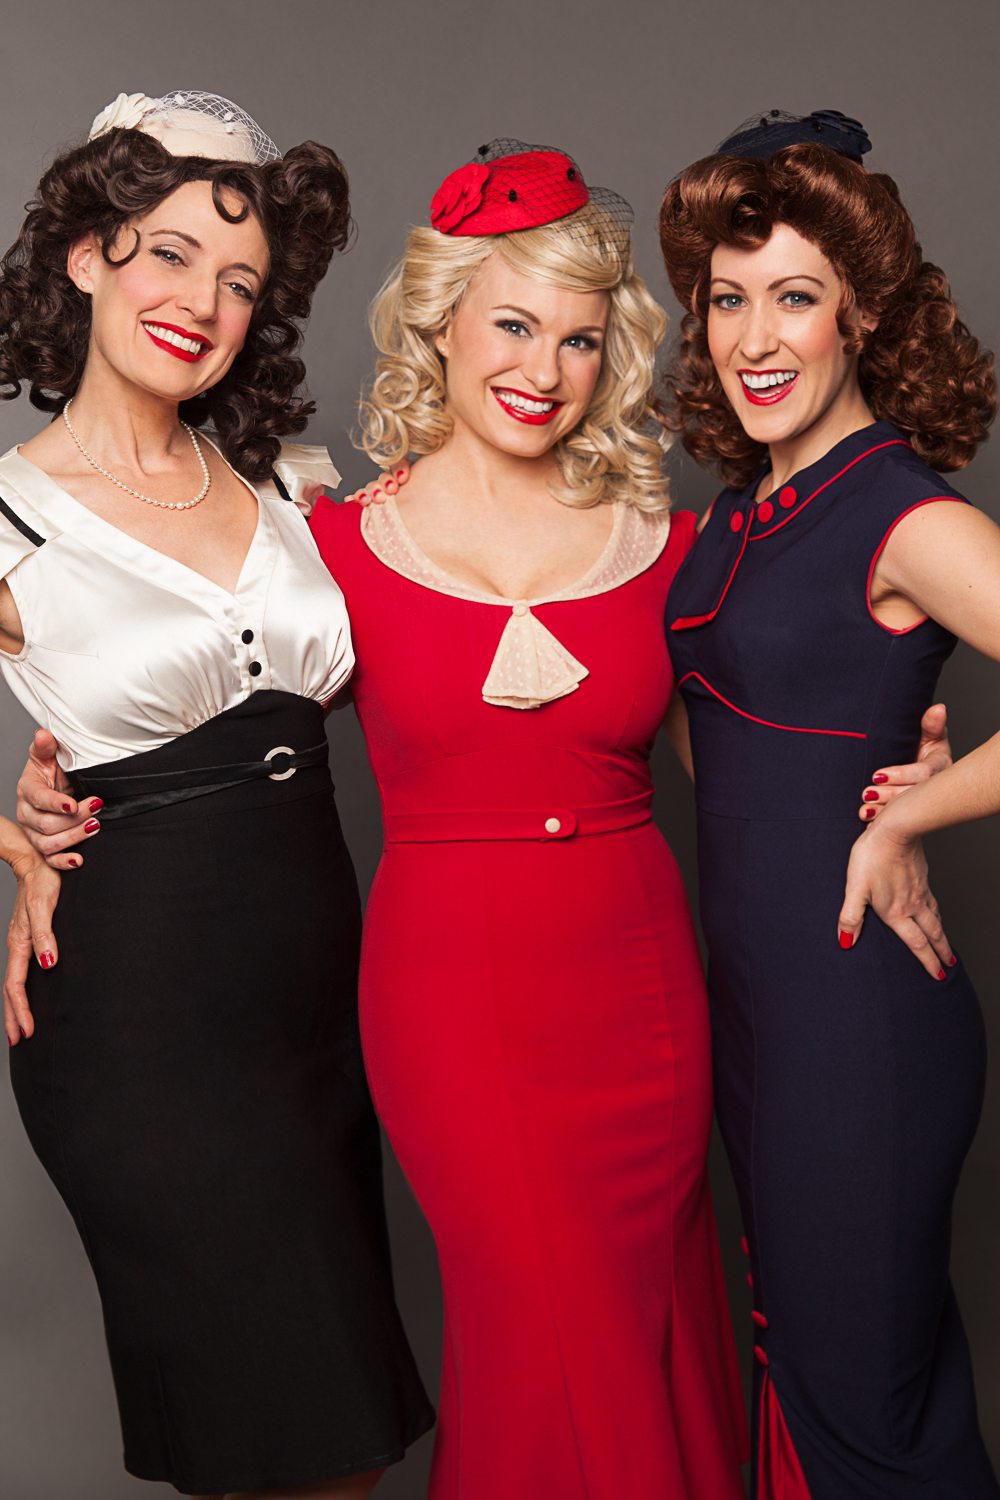 The Swing Dolls 1940's retro dresses, pillbox hats